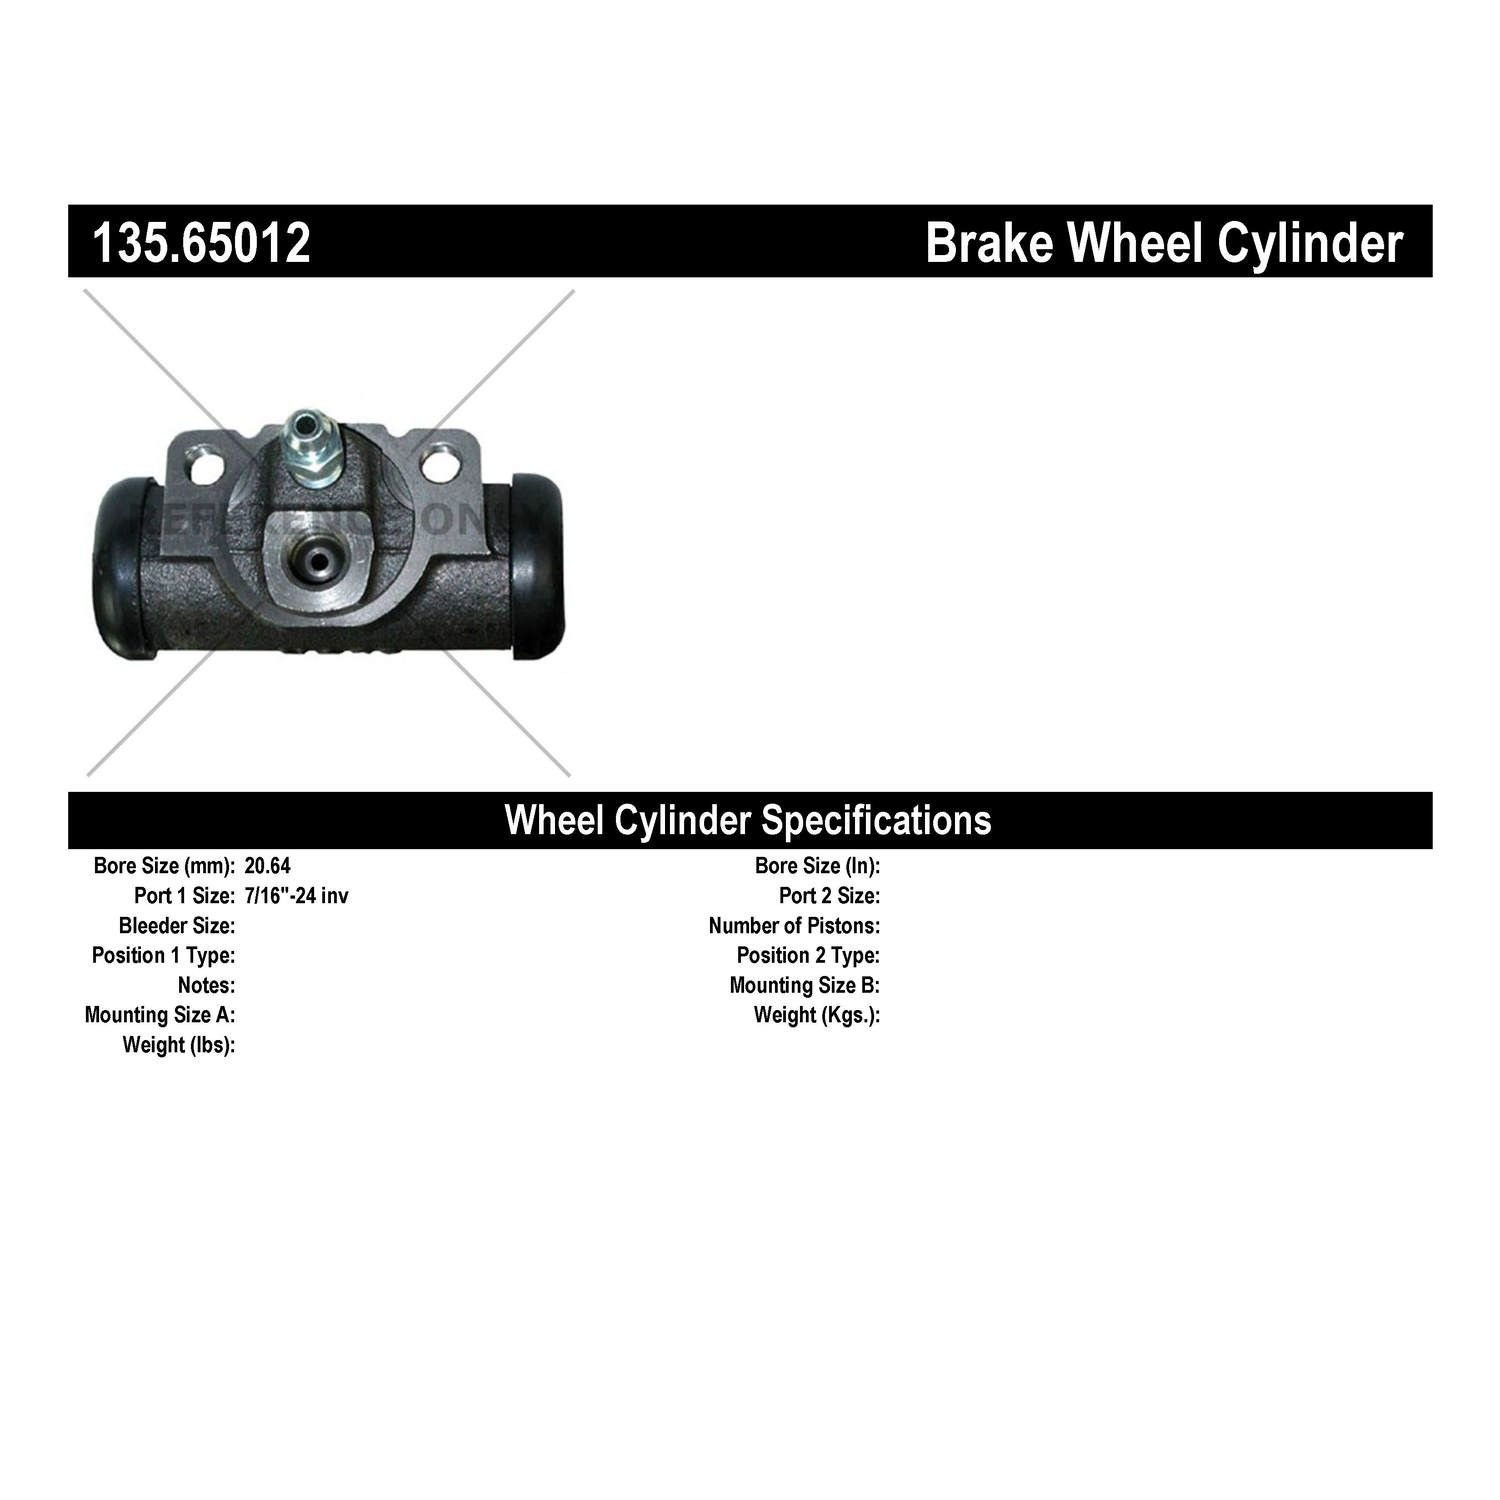 Ford Ranger Drum Brake Cylinder Rear Parts 98 Brakediagrams4x46 Cy Adjuster Lever And Cable 1998 Replacement Wheel Cylinders Caridcom